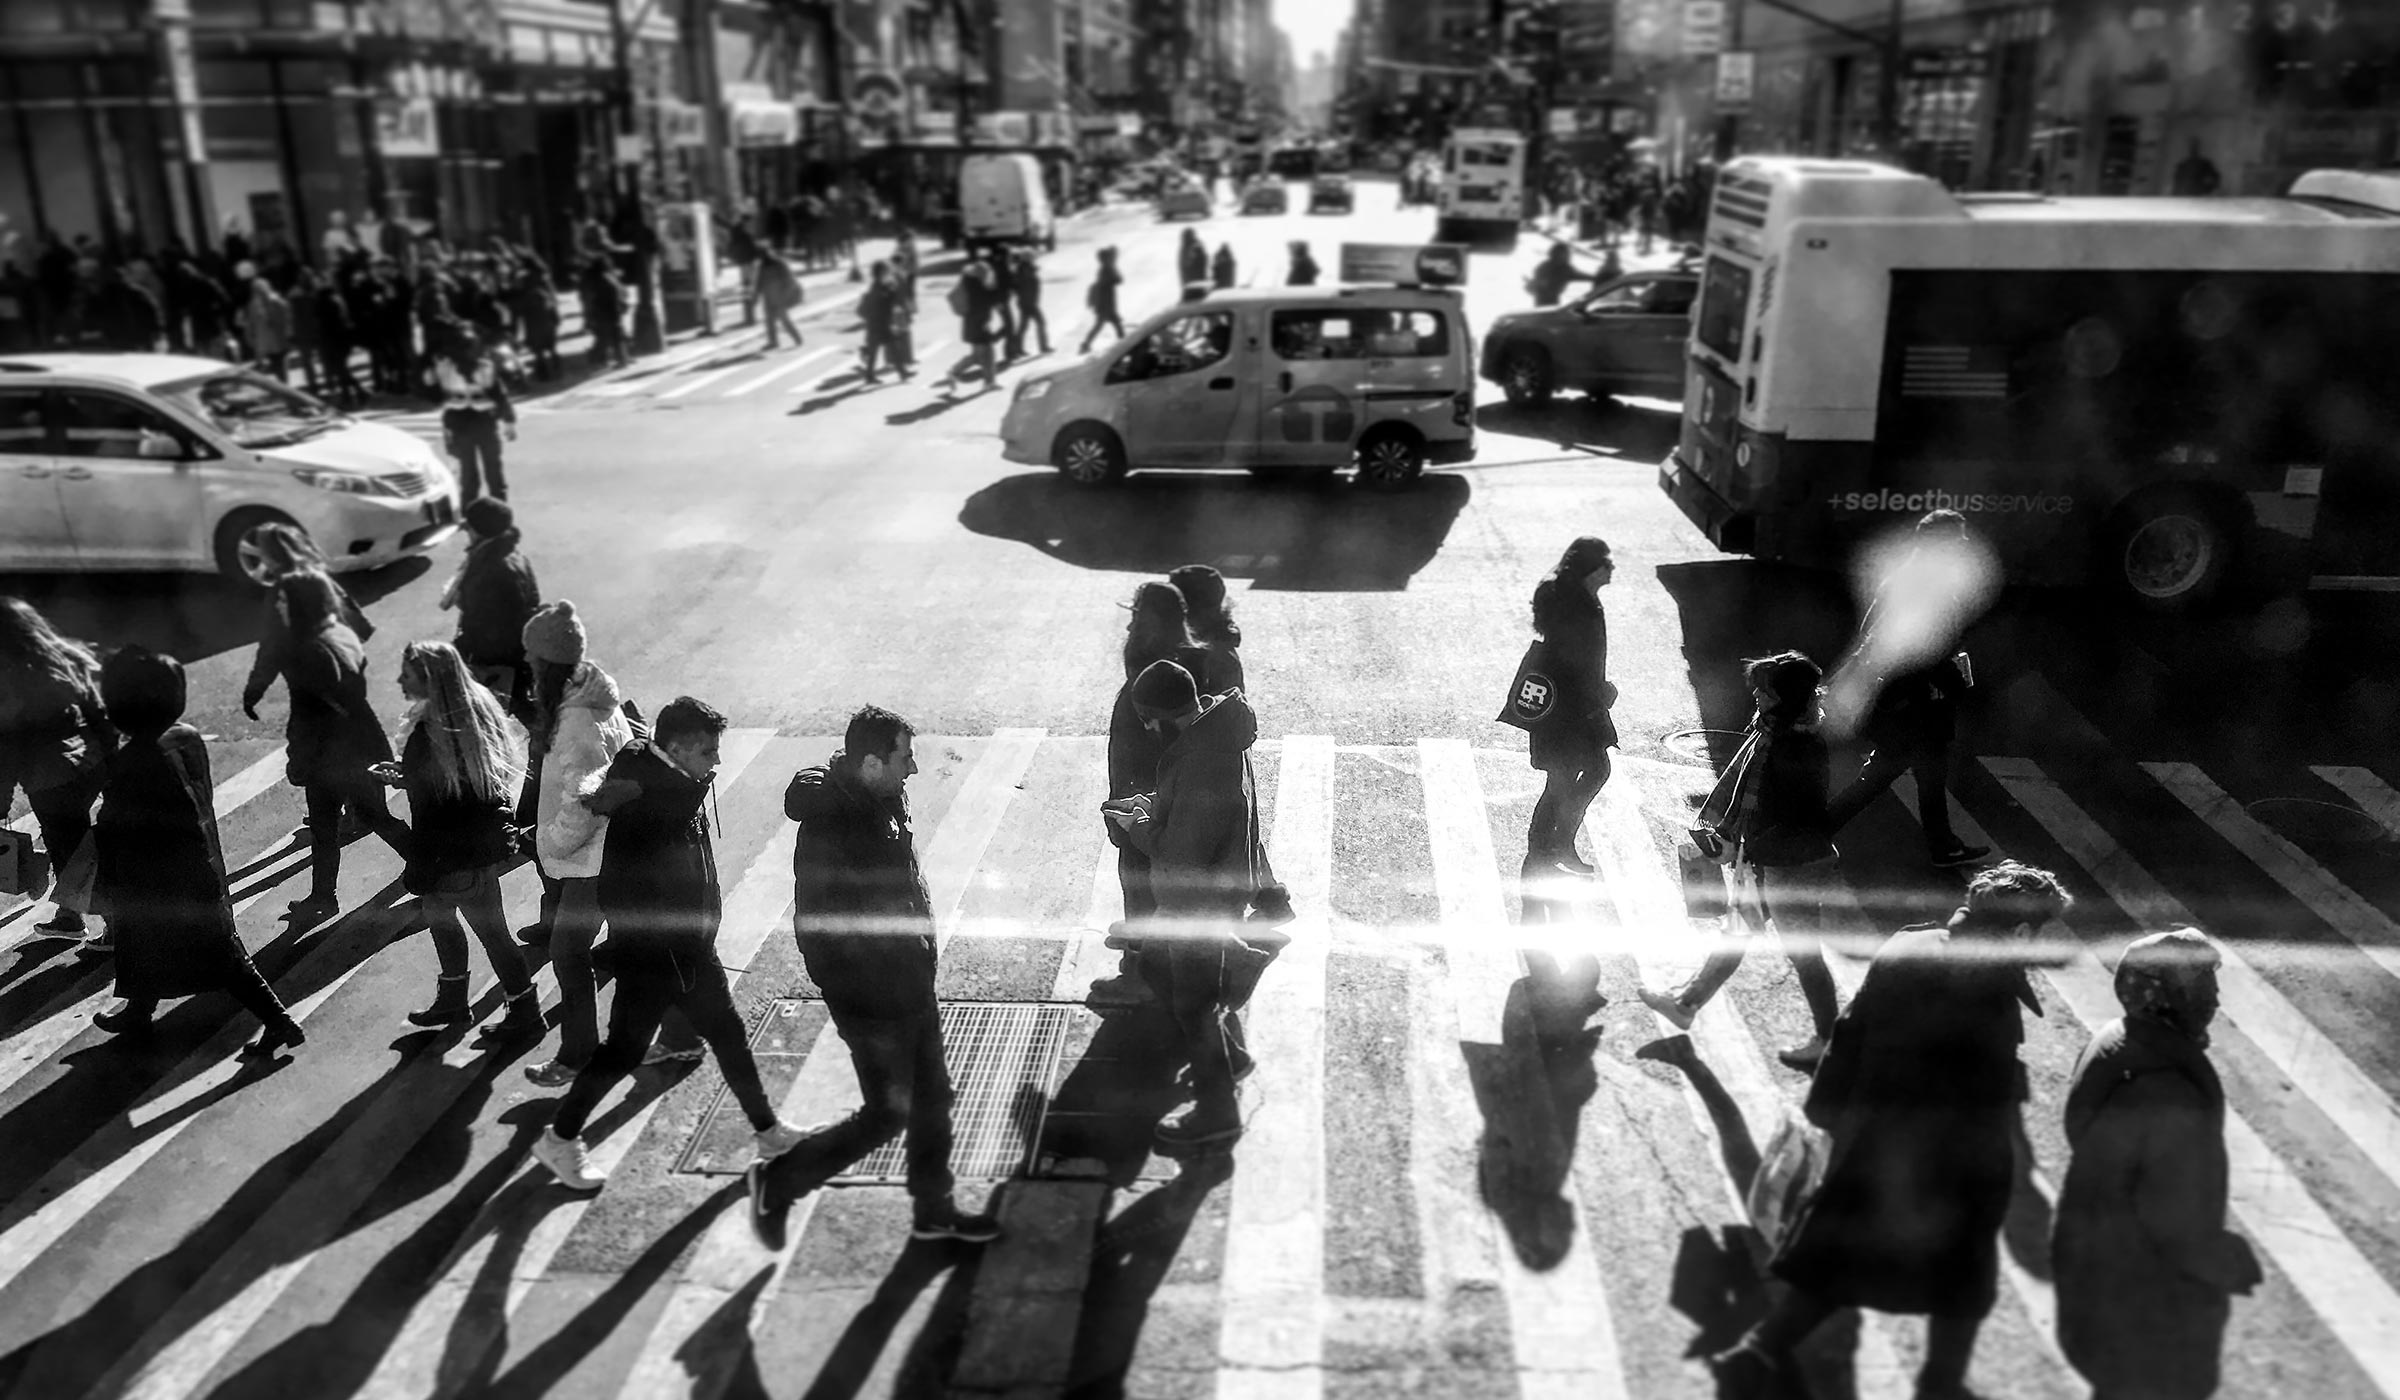 Pedestrians at a busy street crossing in New York City.